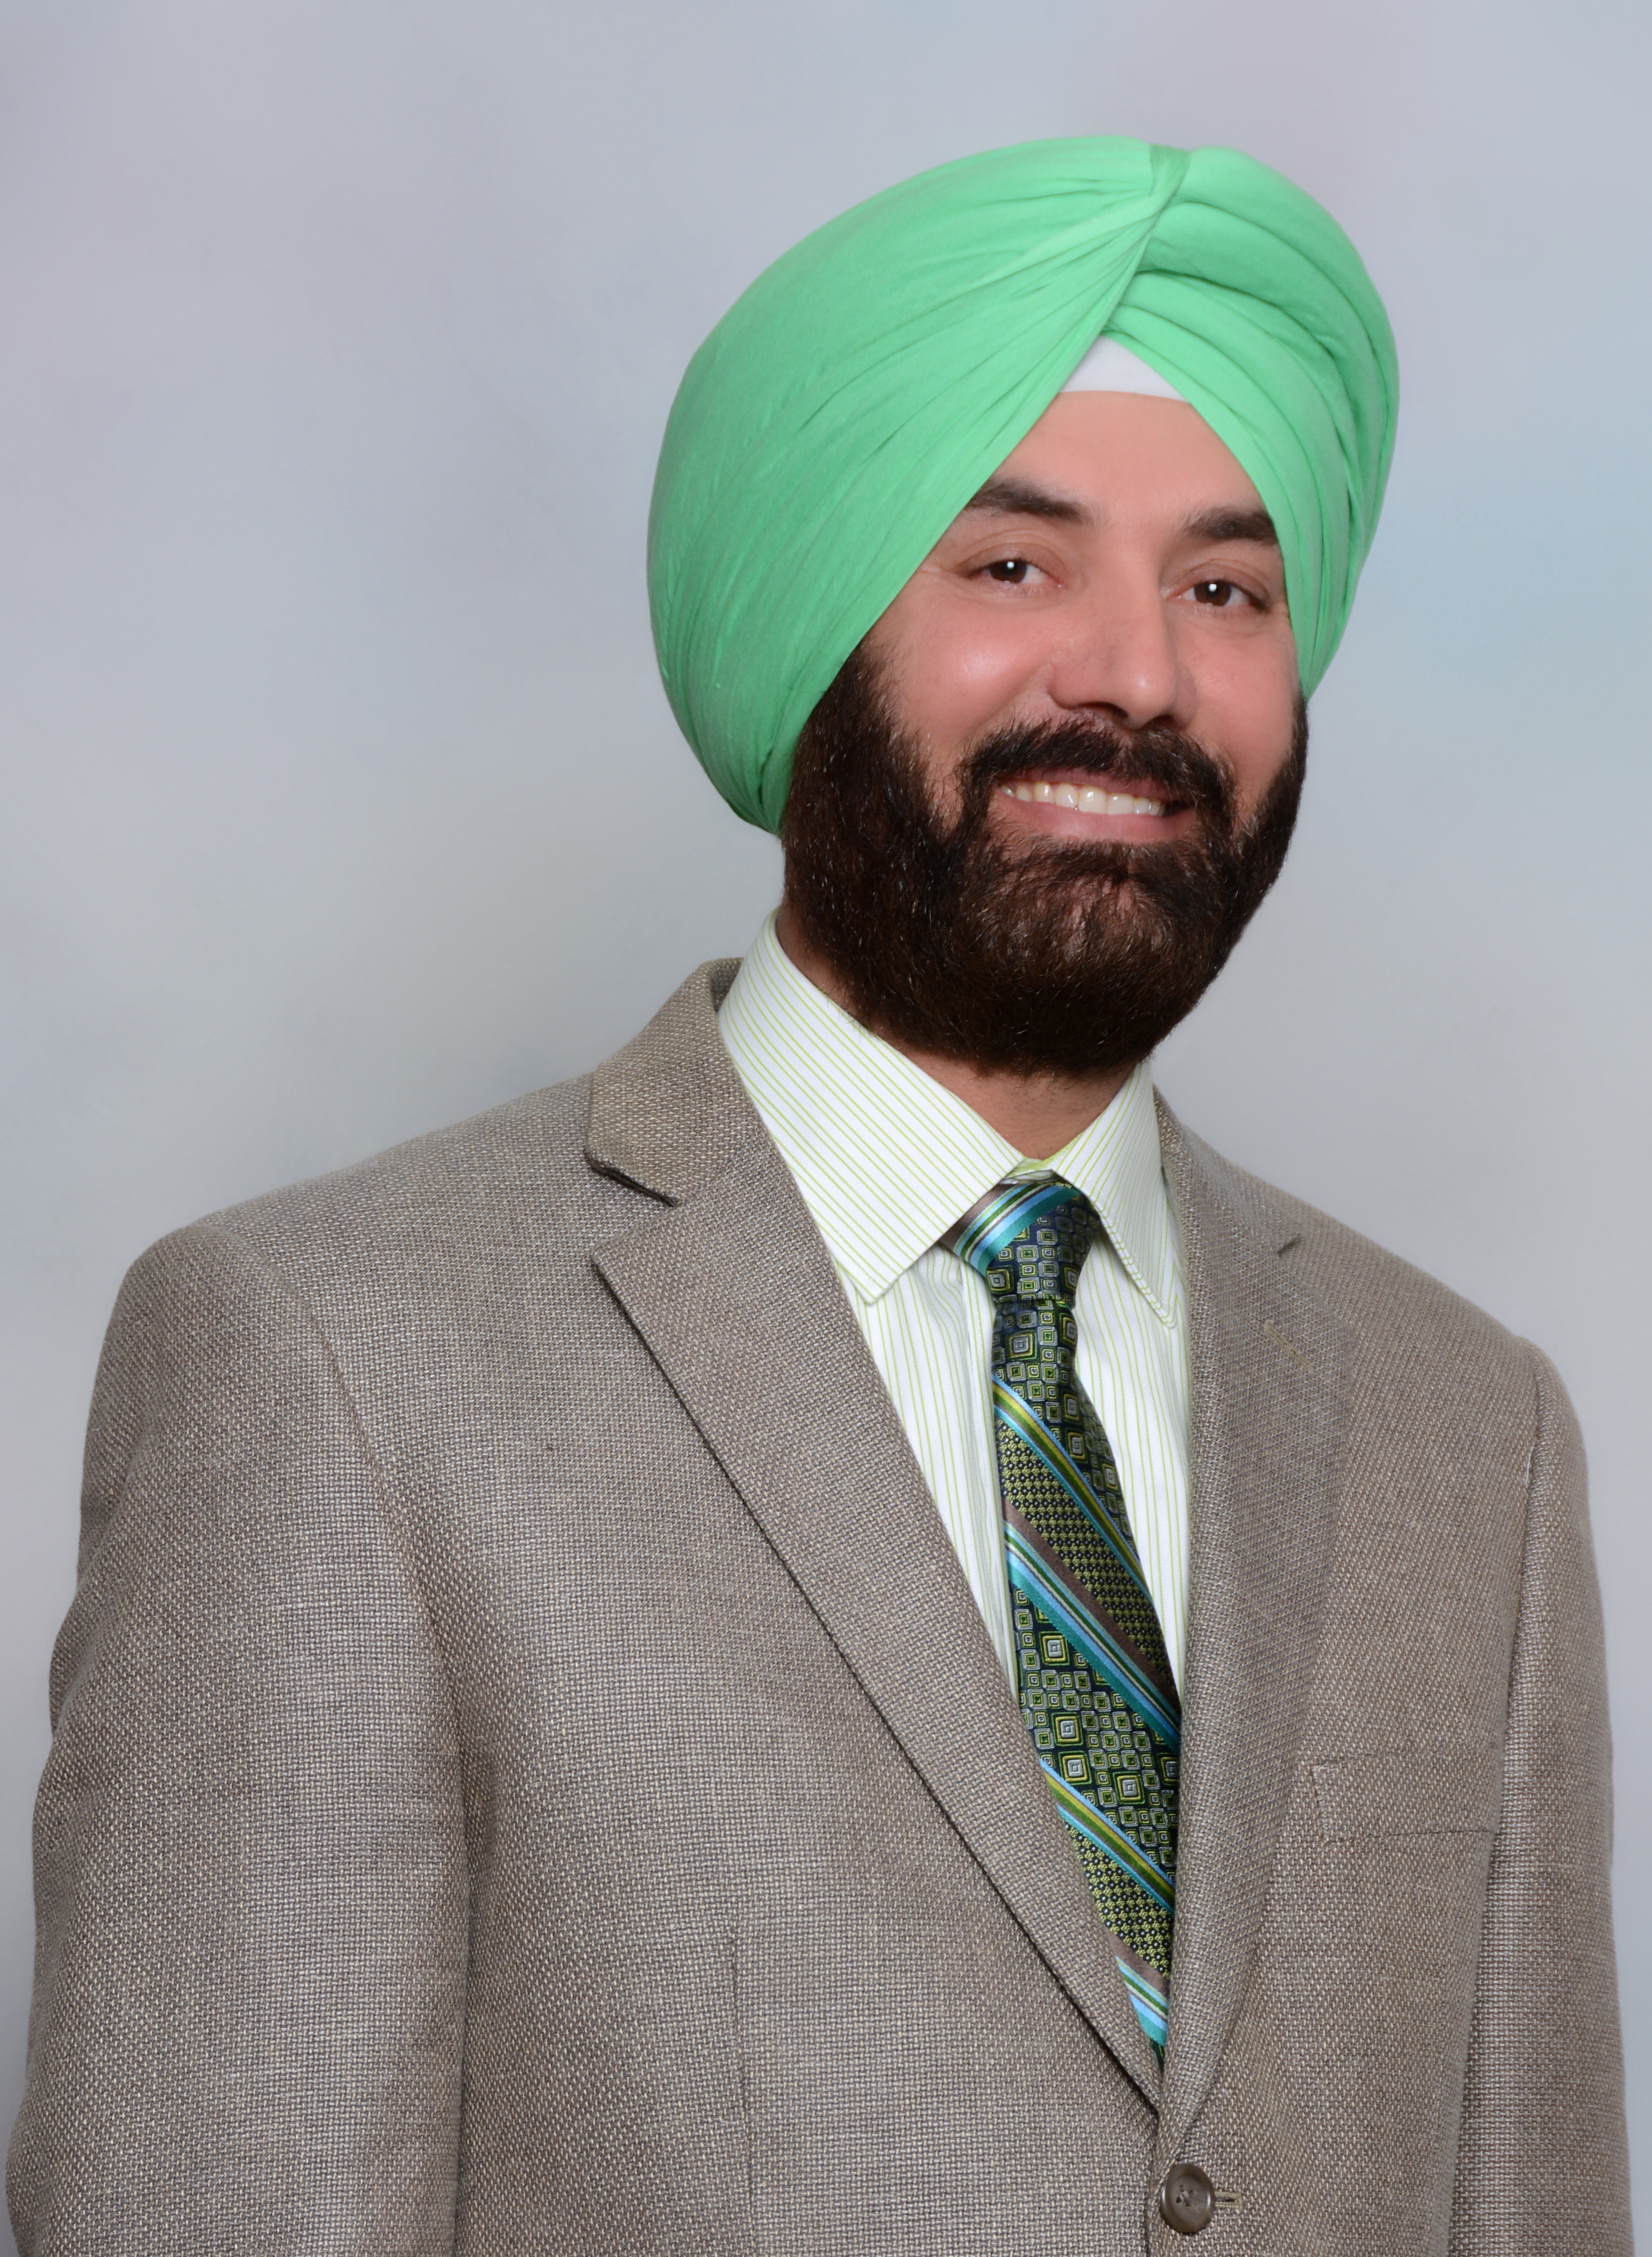 Mohinderpal Sidhu